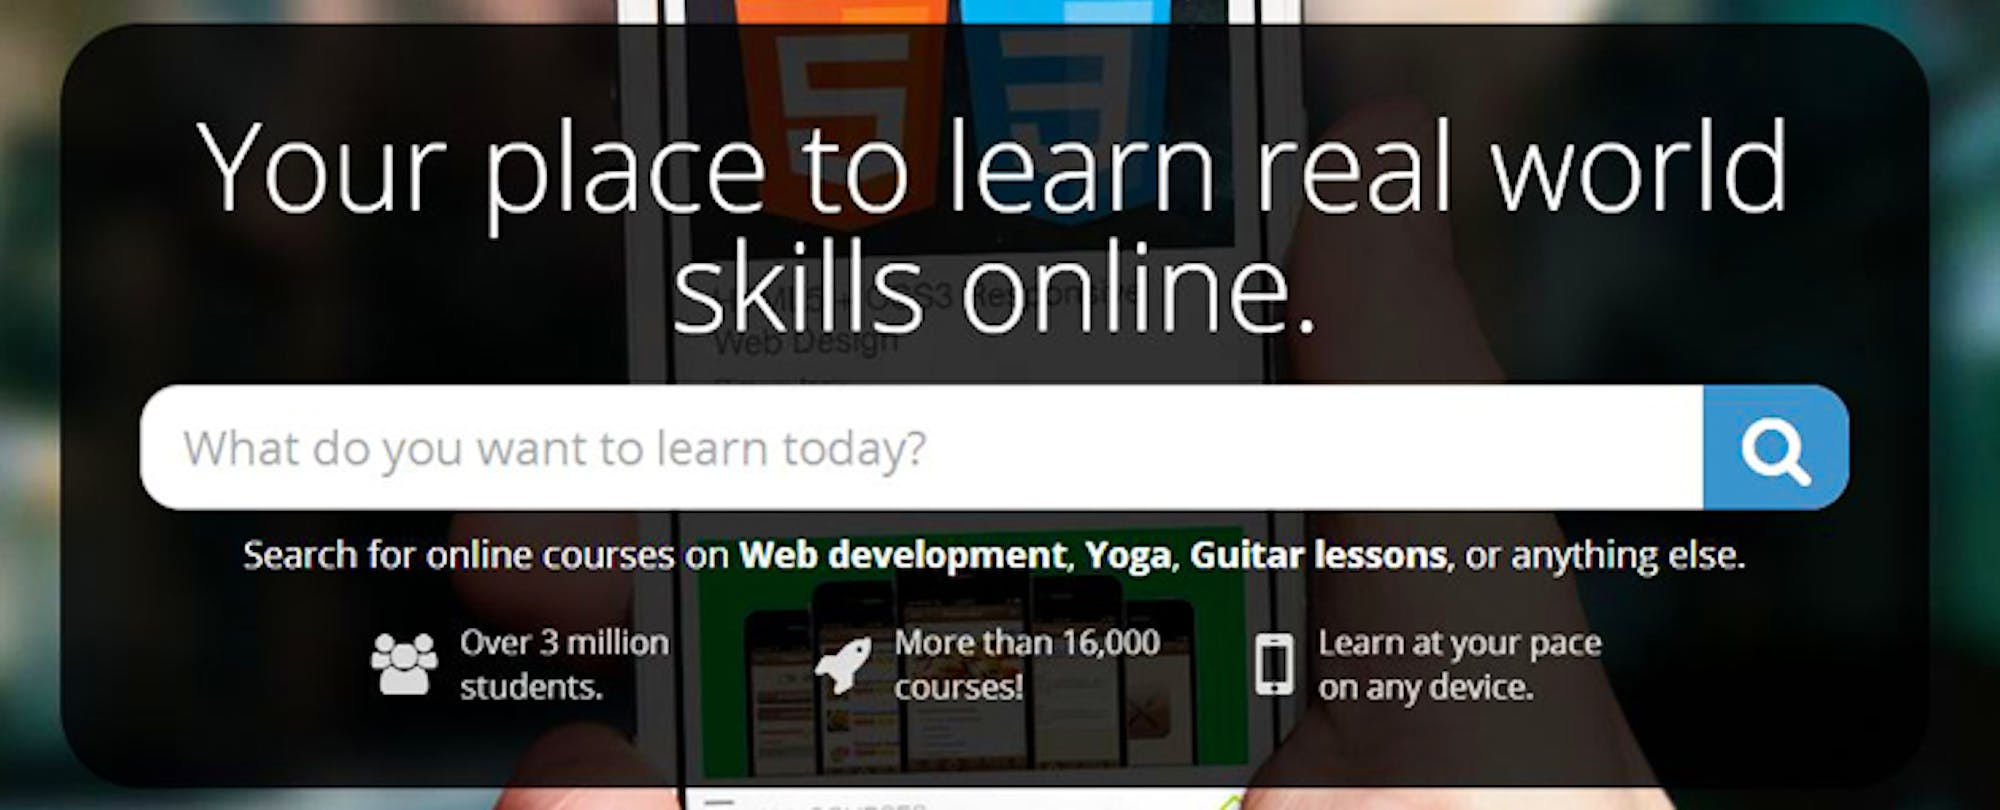 Udemy Raises $32M Series C to Grow 'Broader and Deeper'